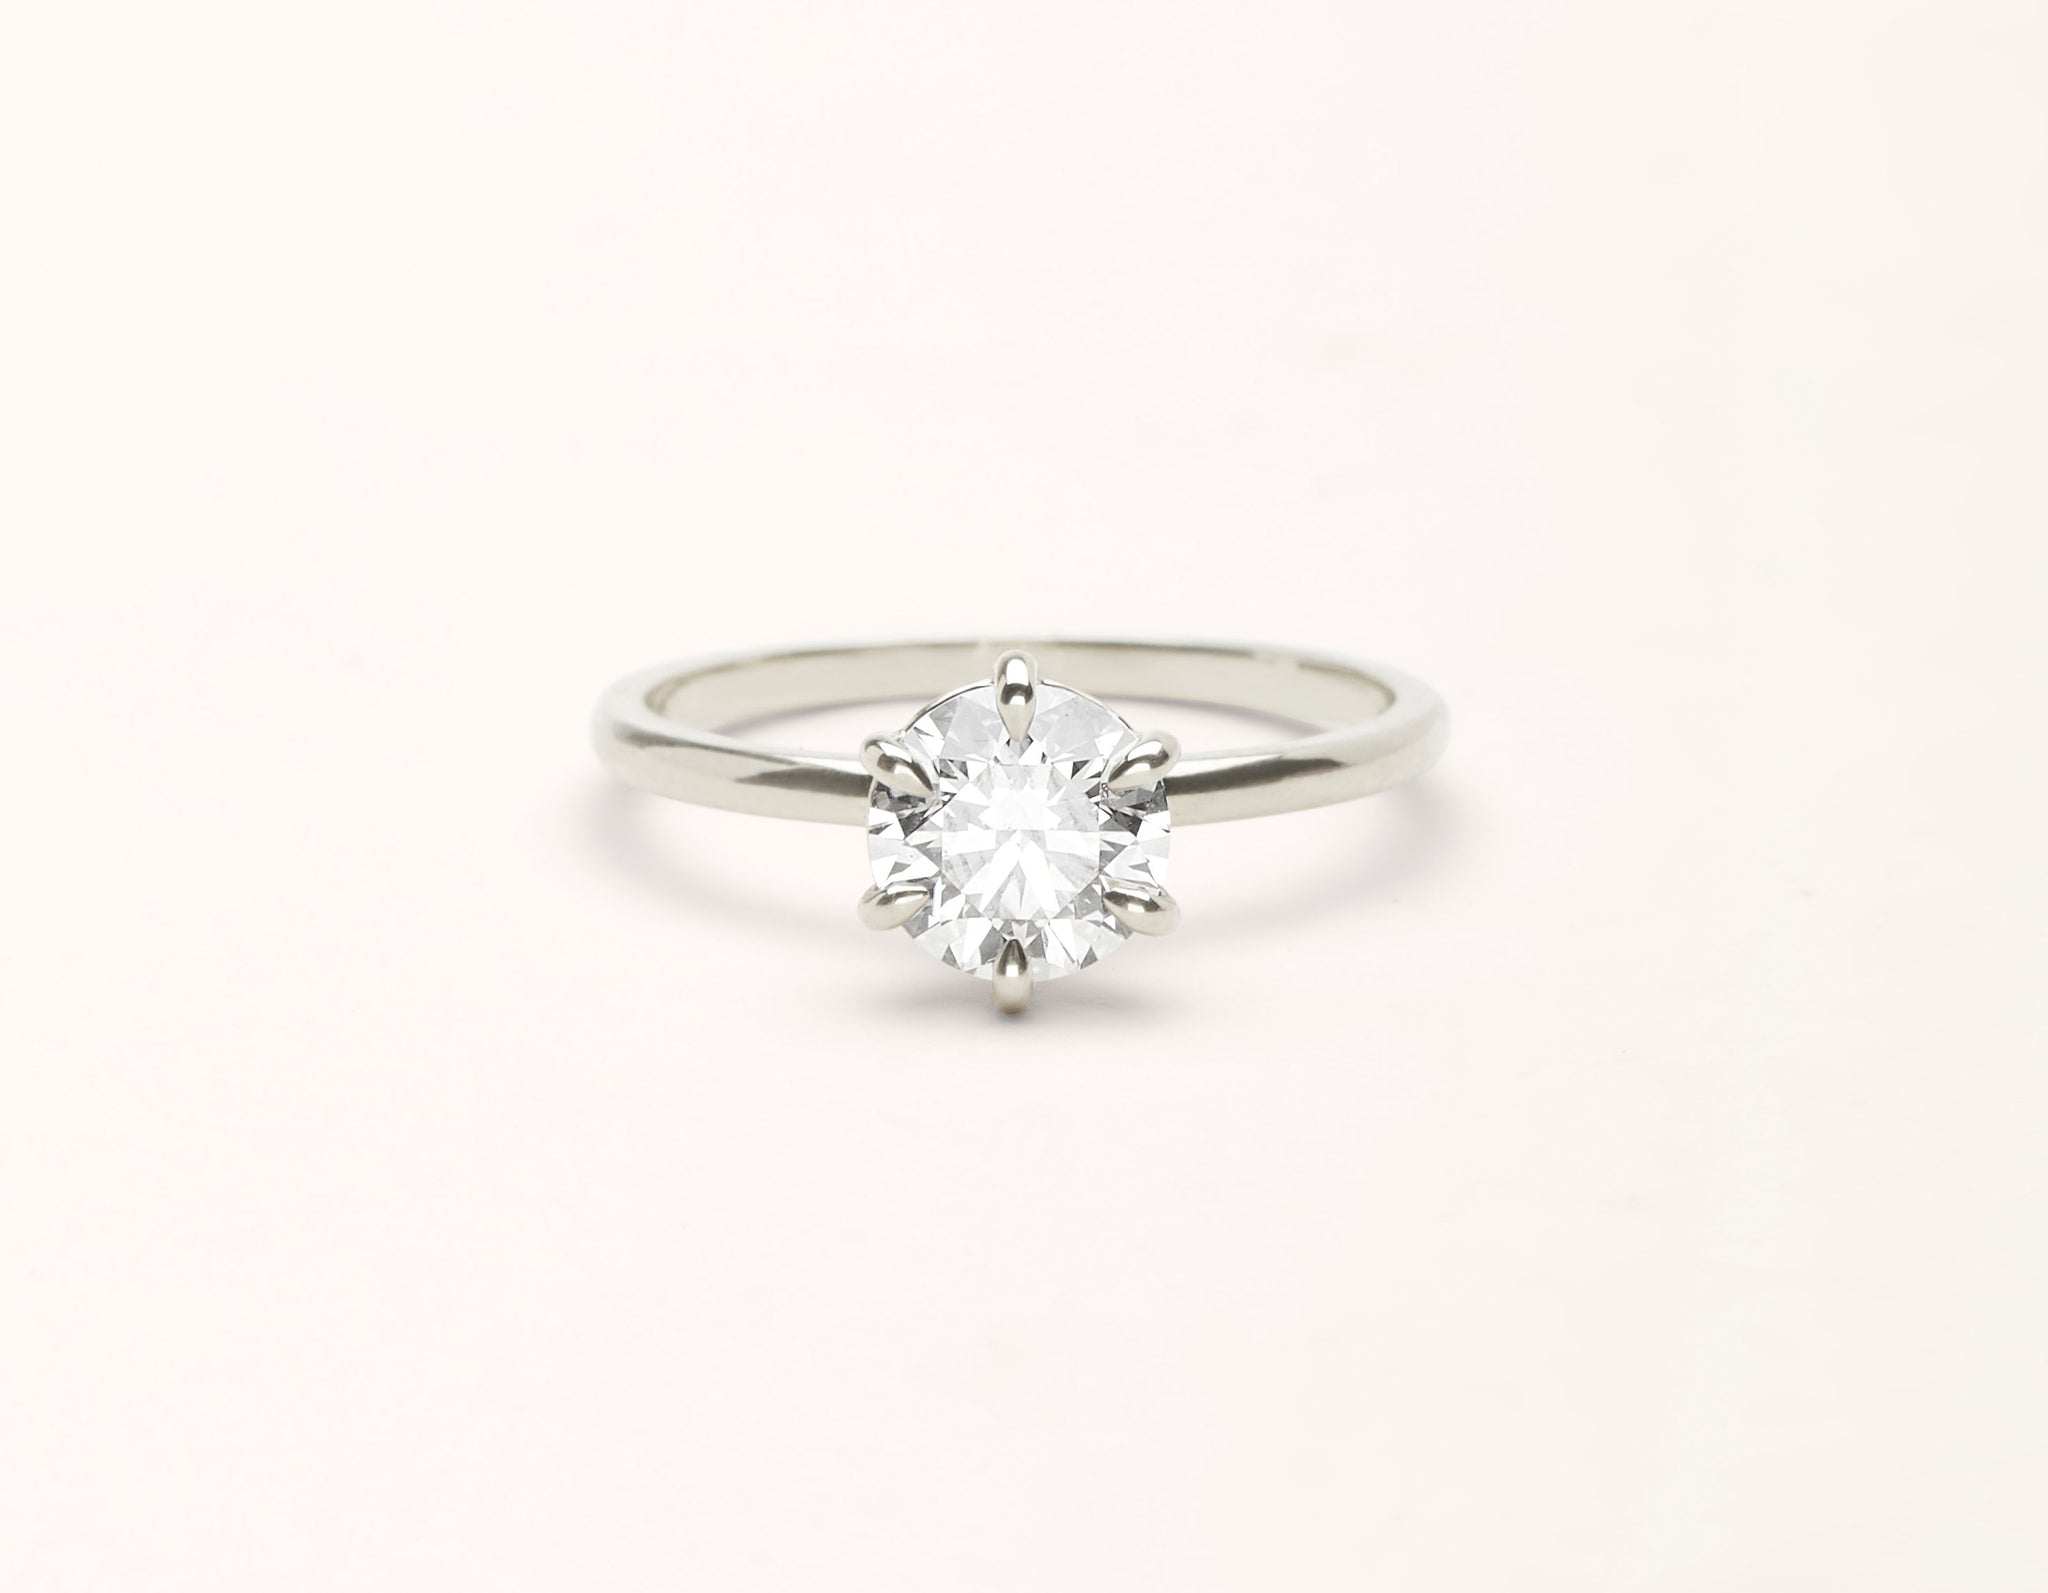 Minimalist 18k solid white gold The Solitaire engagement ring round brilliant cut 1 ct diamond Vrai and Oro